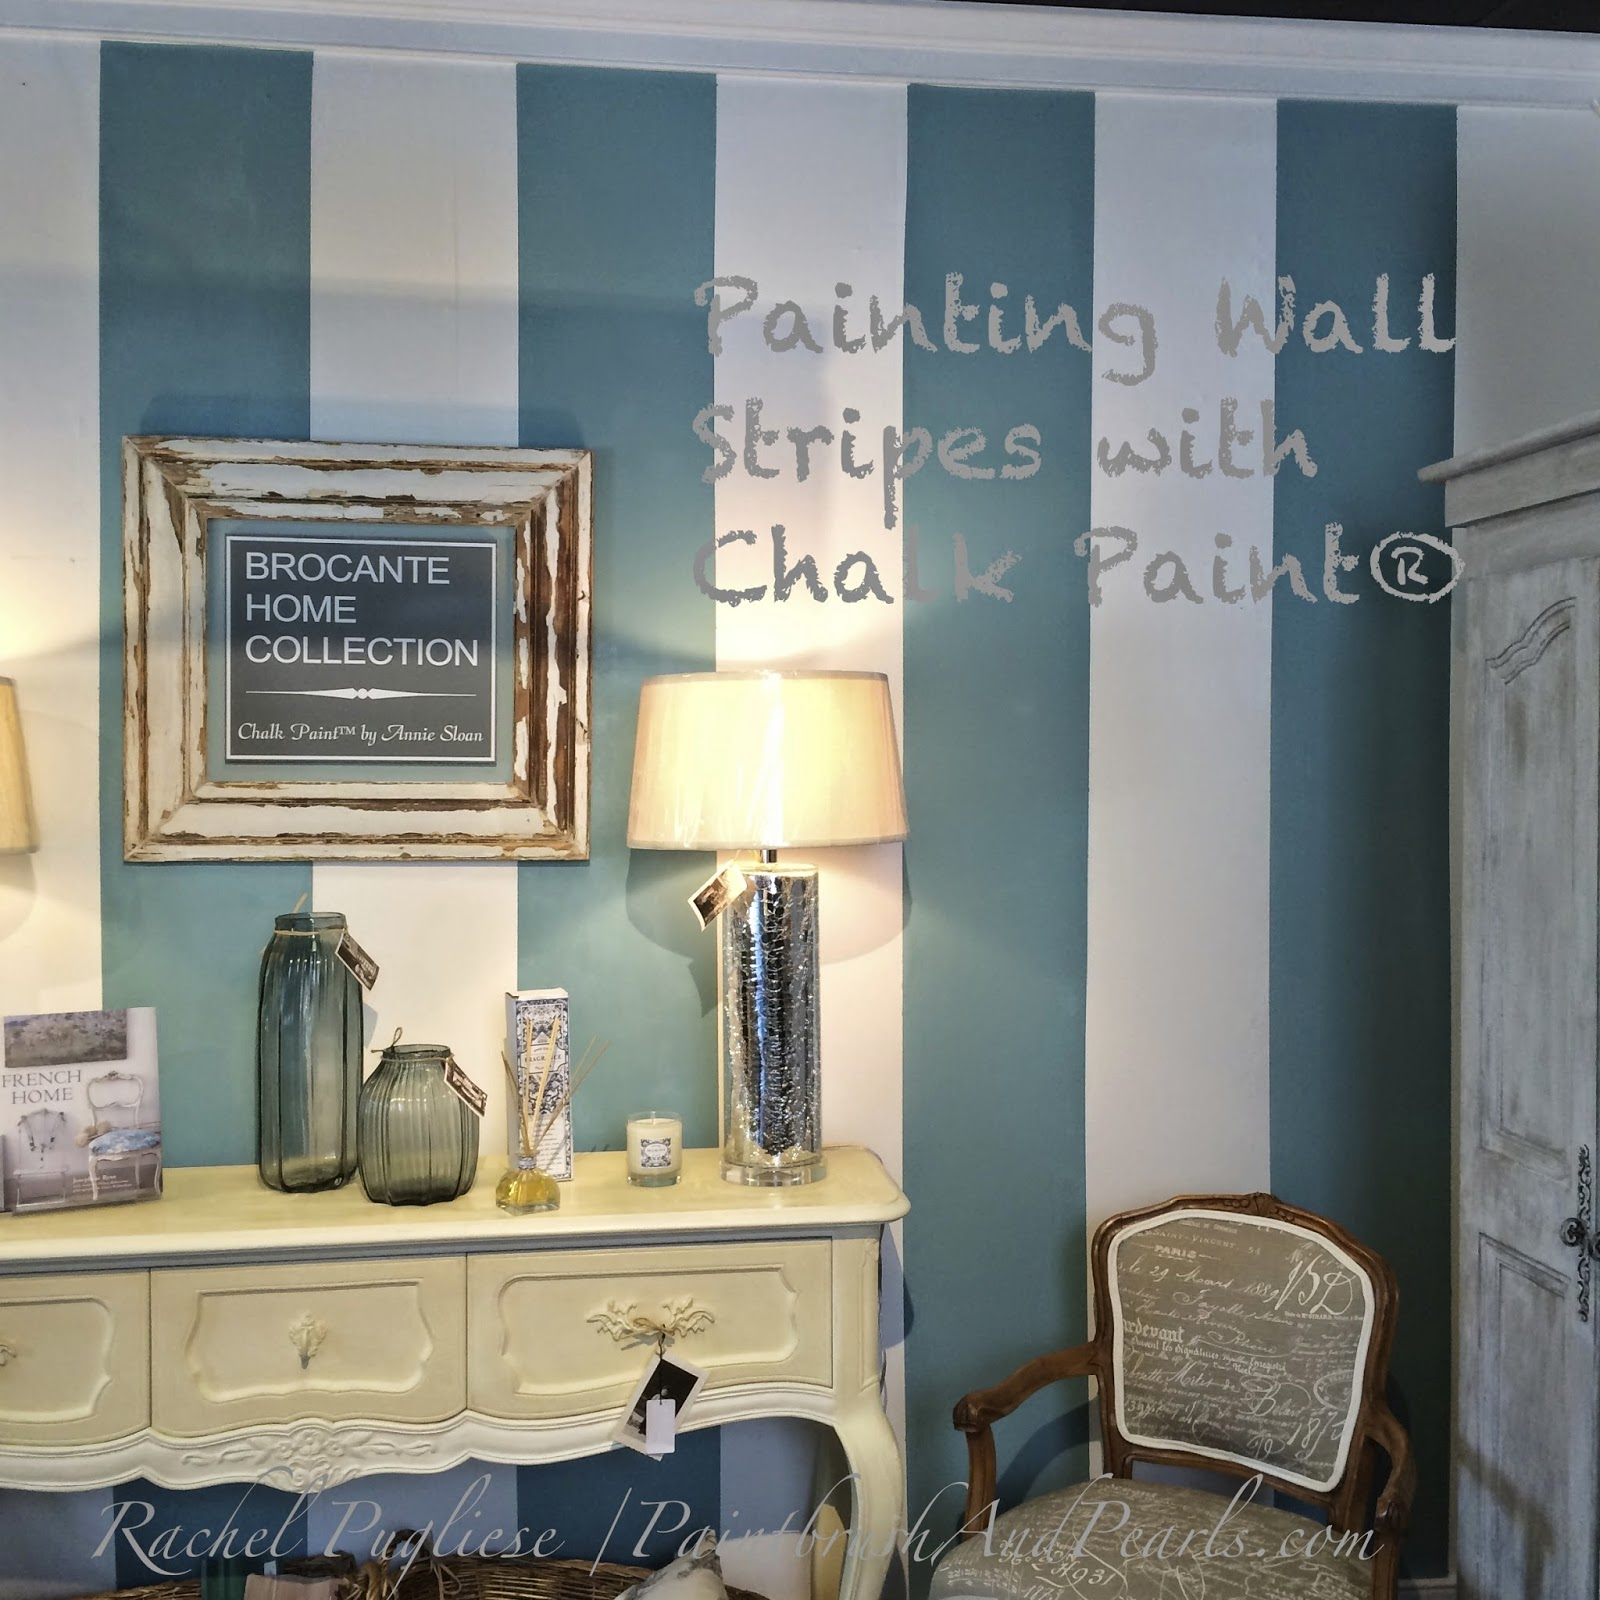 brocante home collection s paintbrush and pearls tips Annie Sloan Chalk Paint Furniture Chalk Paint Colors for Furniture